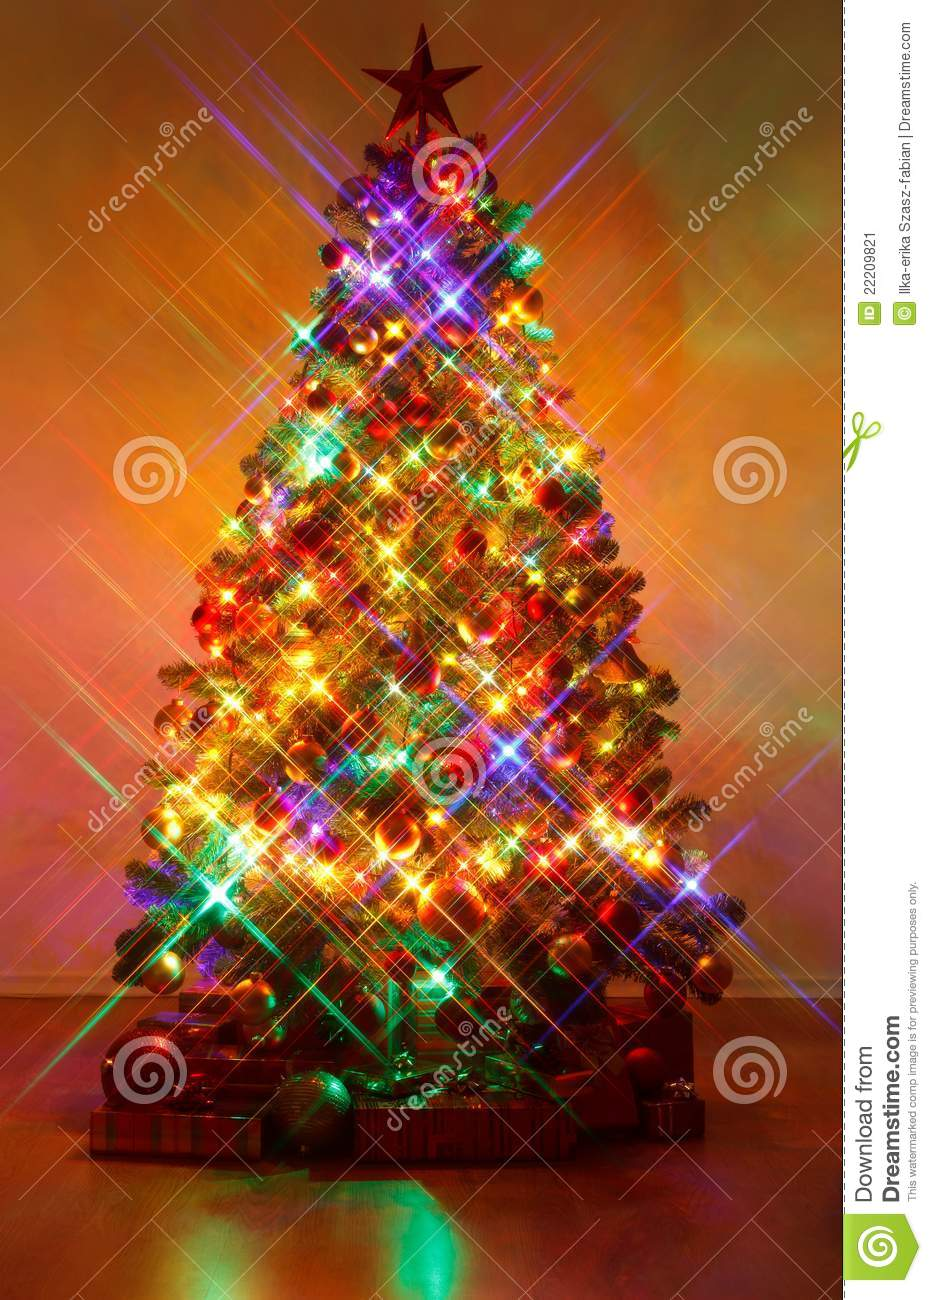 Christmas Tree Shot With Cross Screen Filter Stock Image